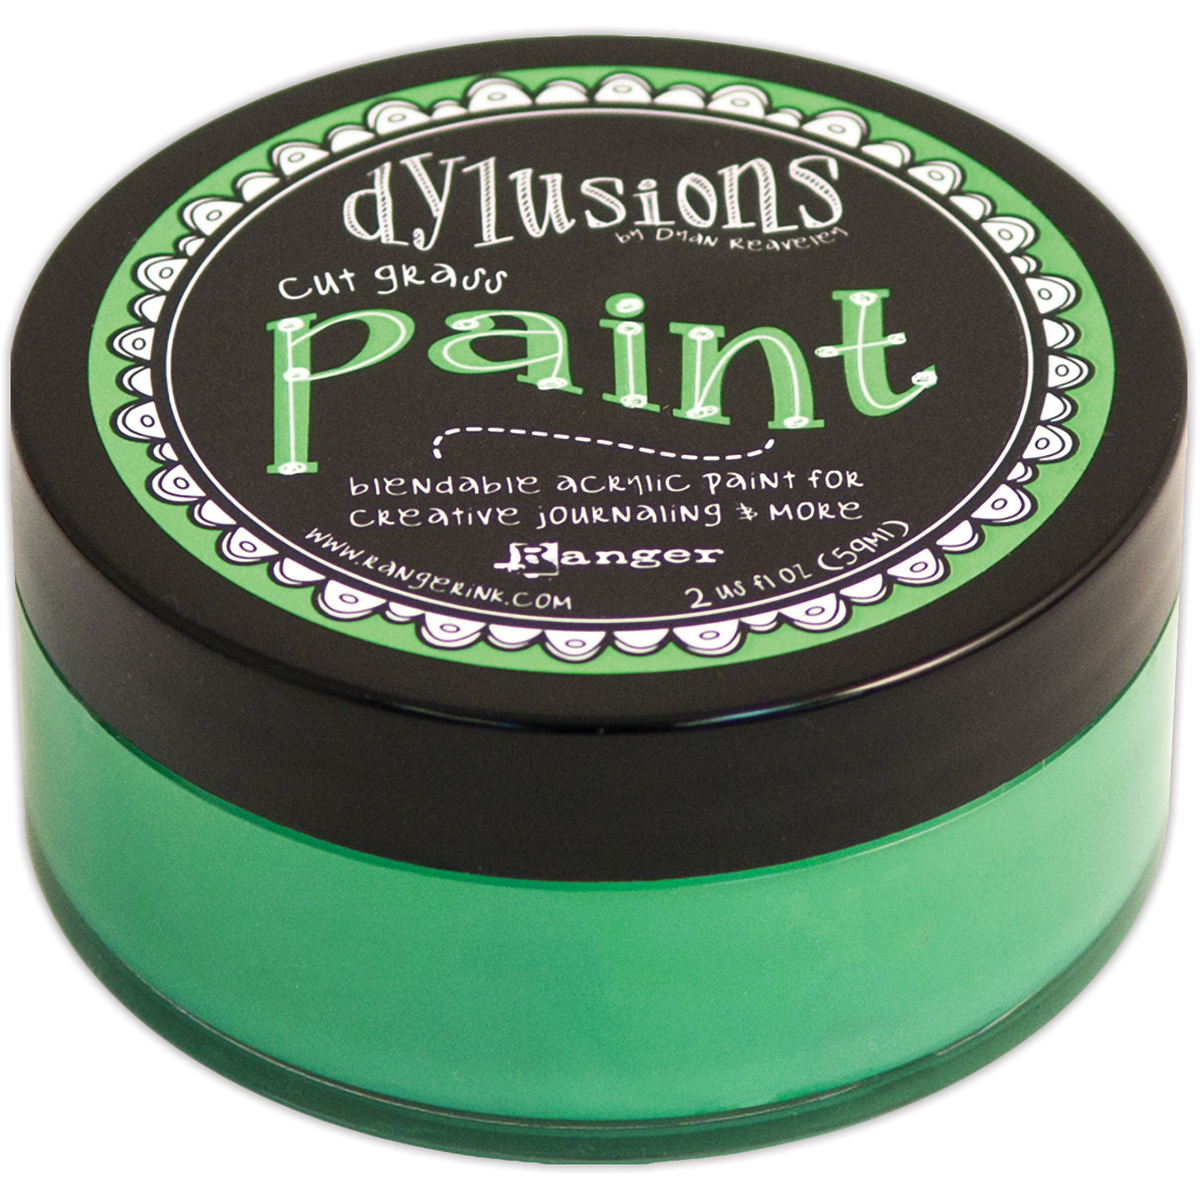 Dylusions By Dyan Reaveley Blendable Acrylic Paint 2oz-Cut Grass